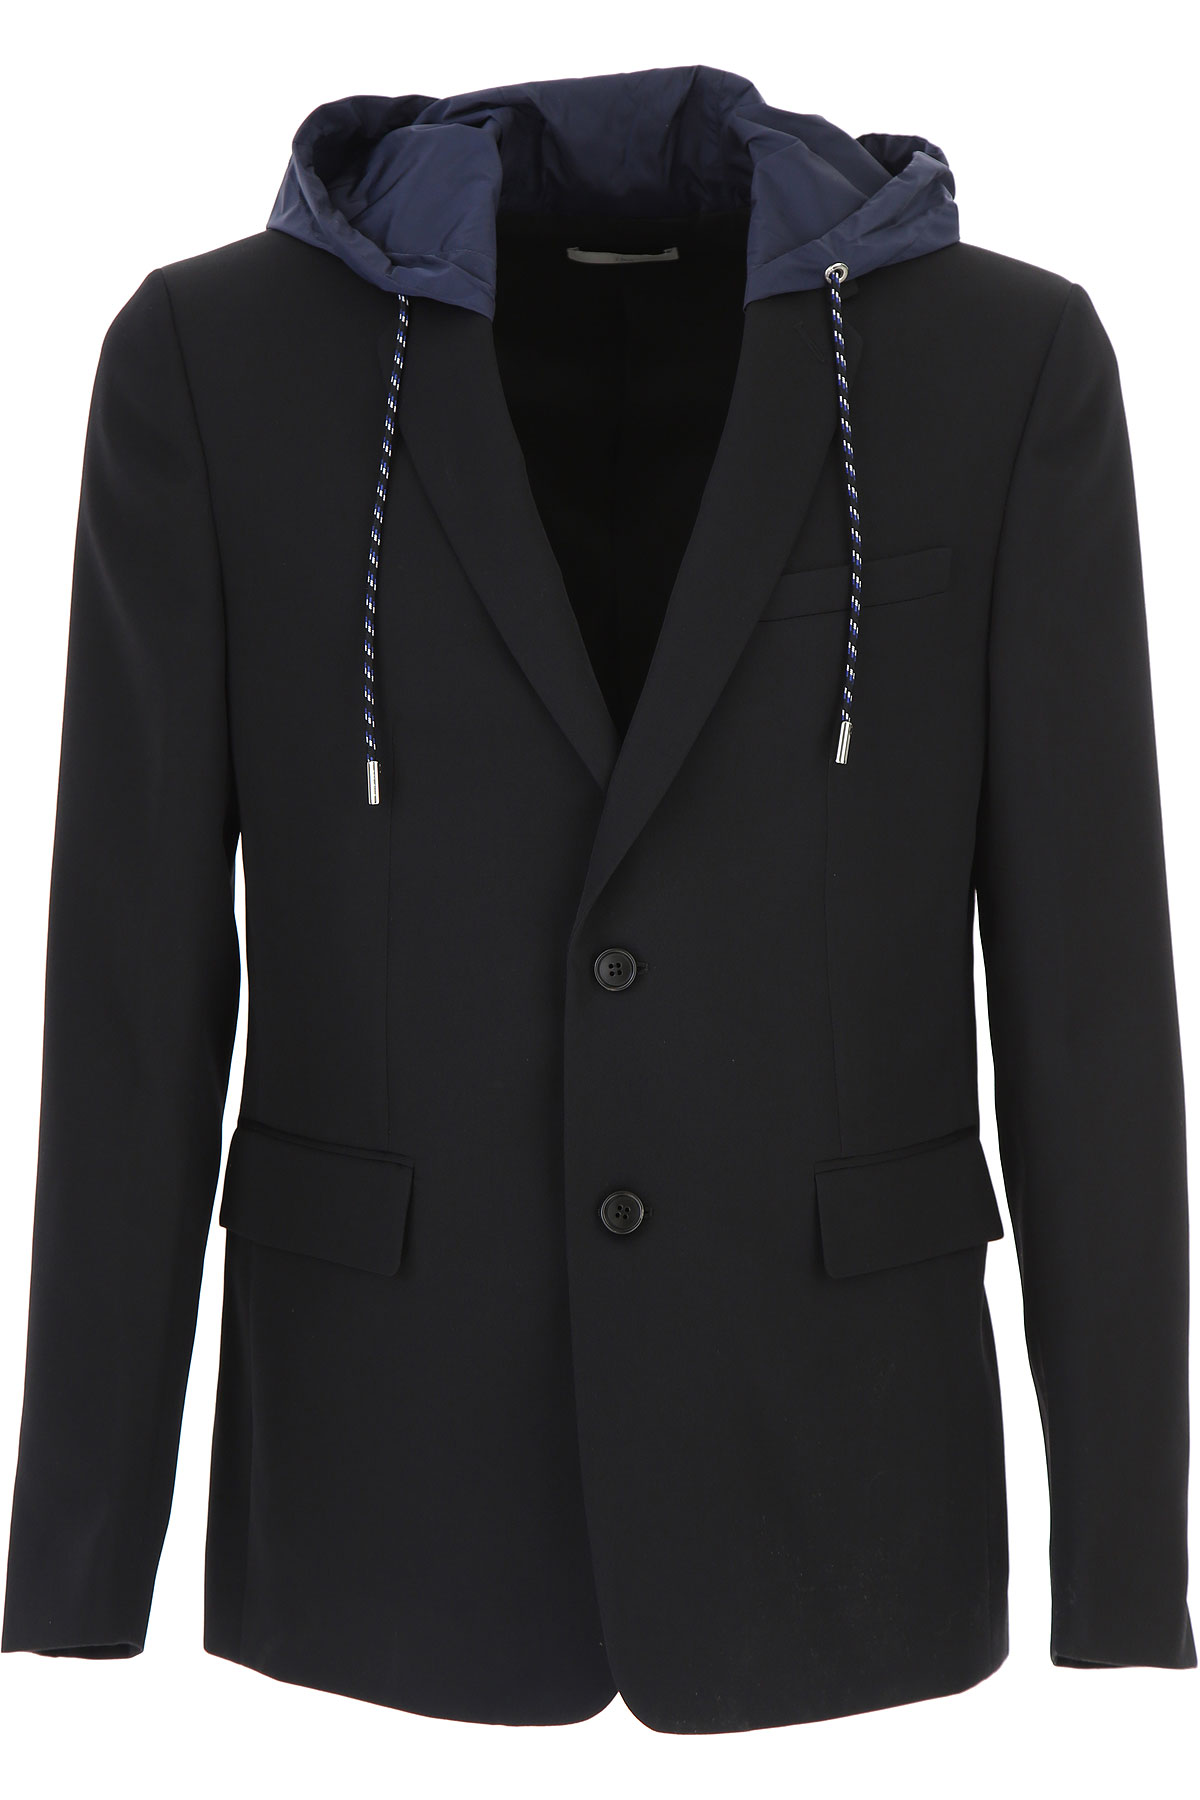 Image of Christian Dior Blazer for Men, Sport Coat On Sale in Outlet, Black, cupro, 2017, L M